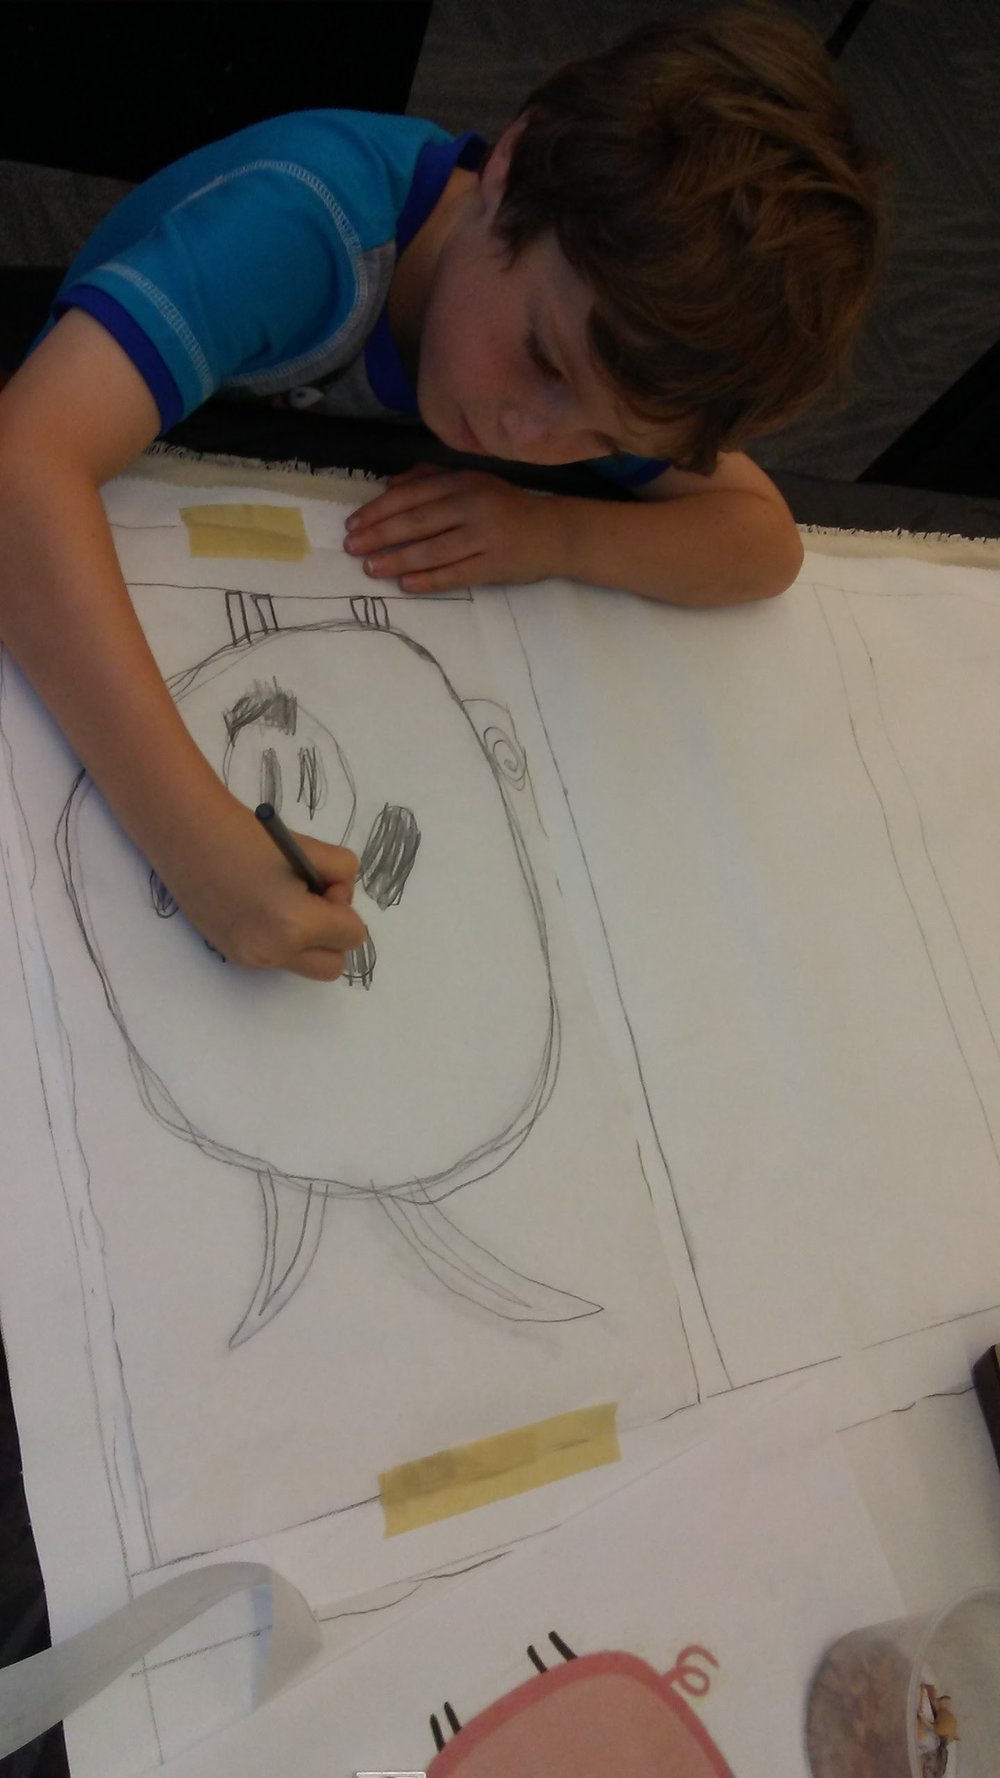 Tracing image to canvas to paint.